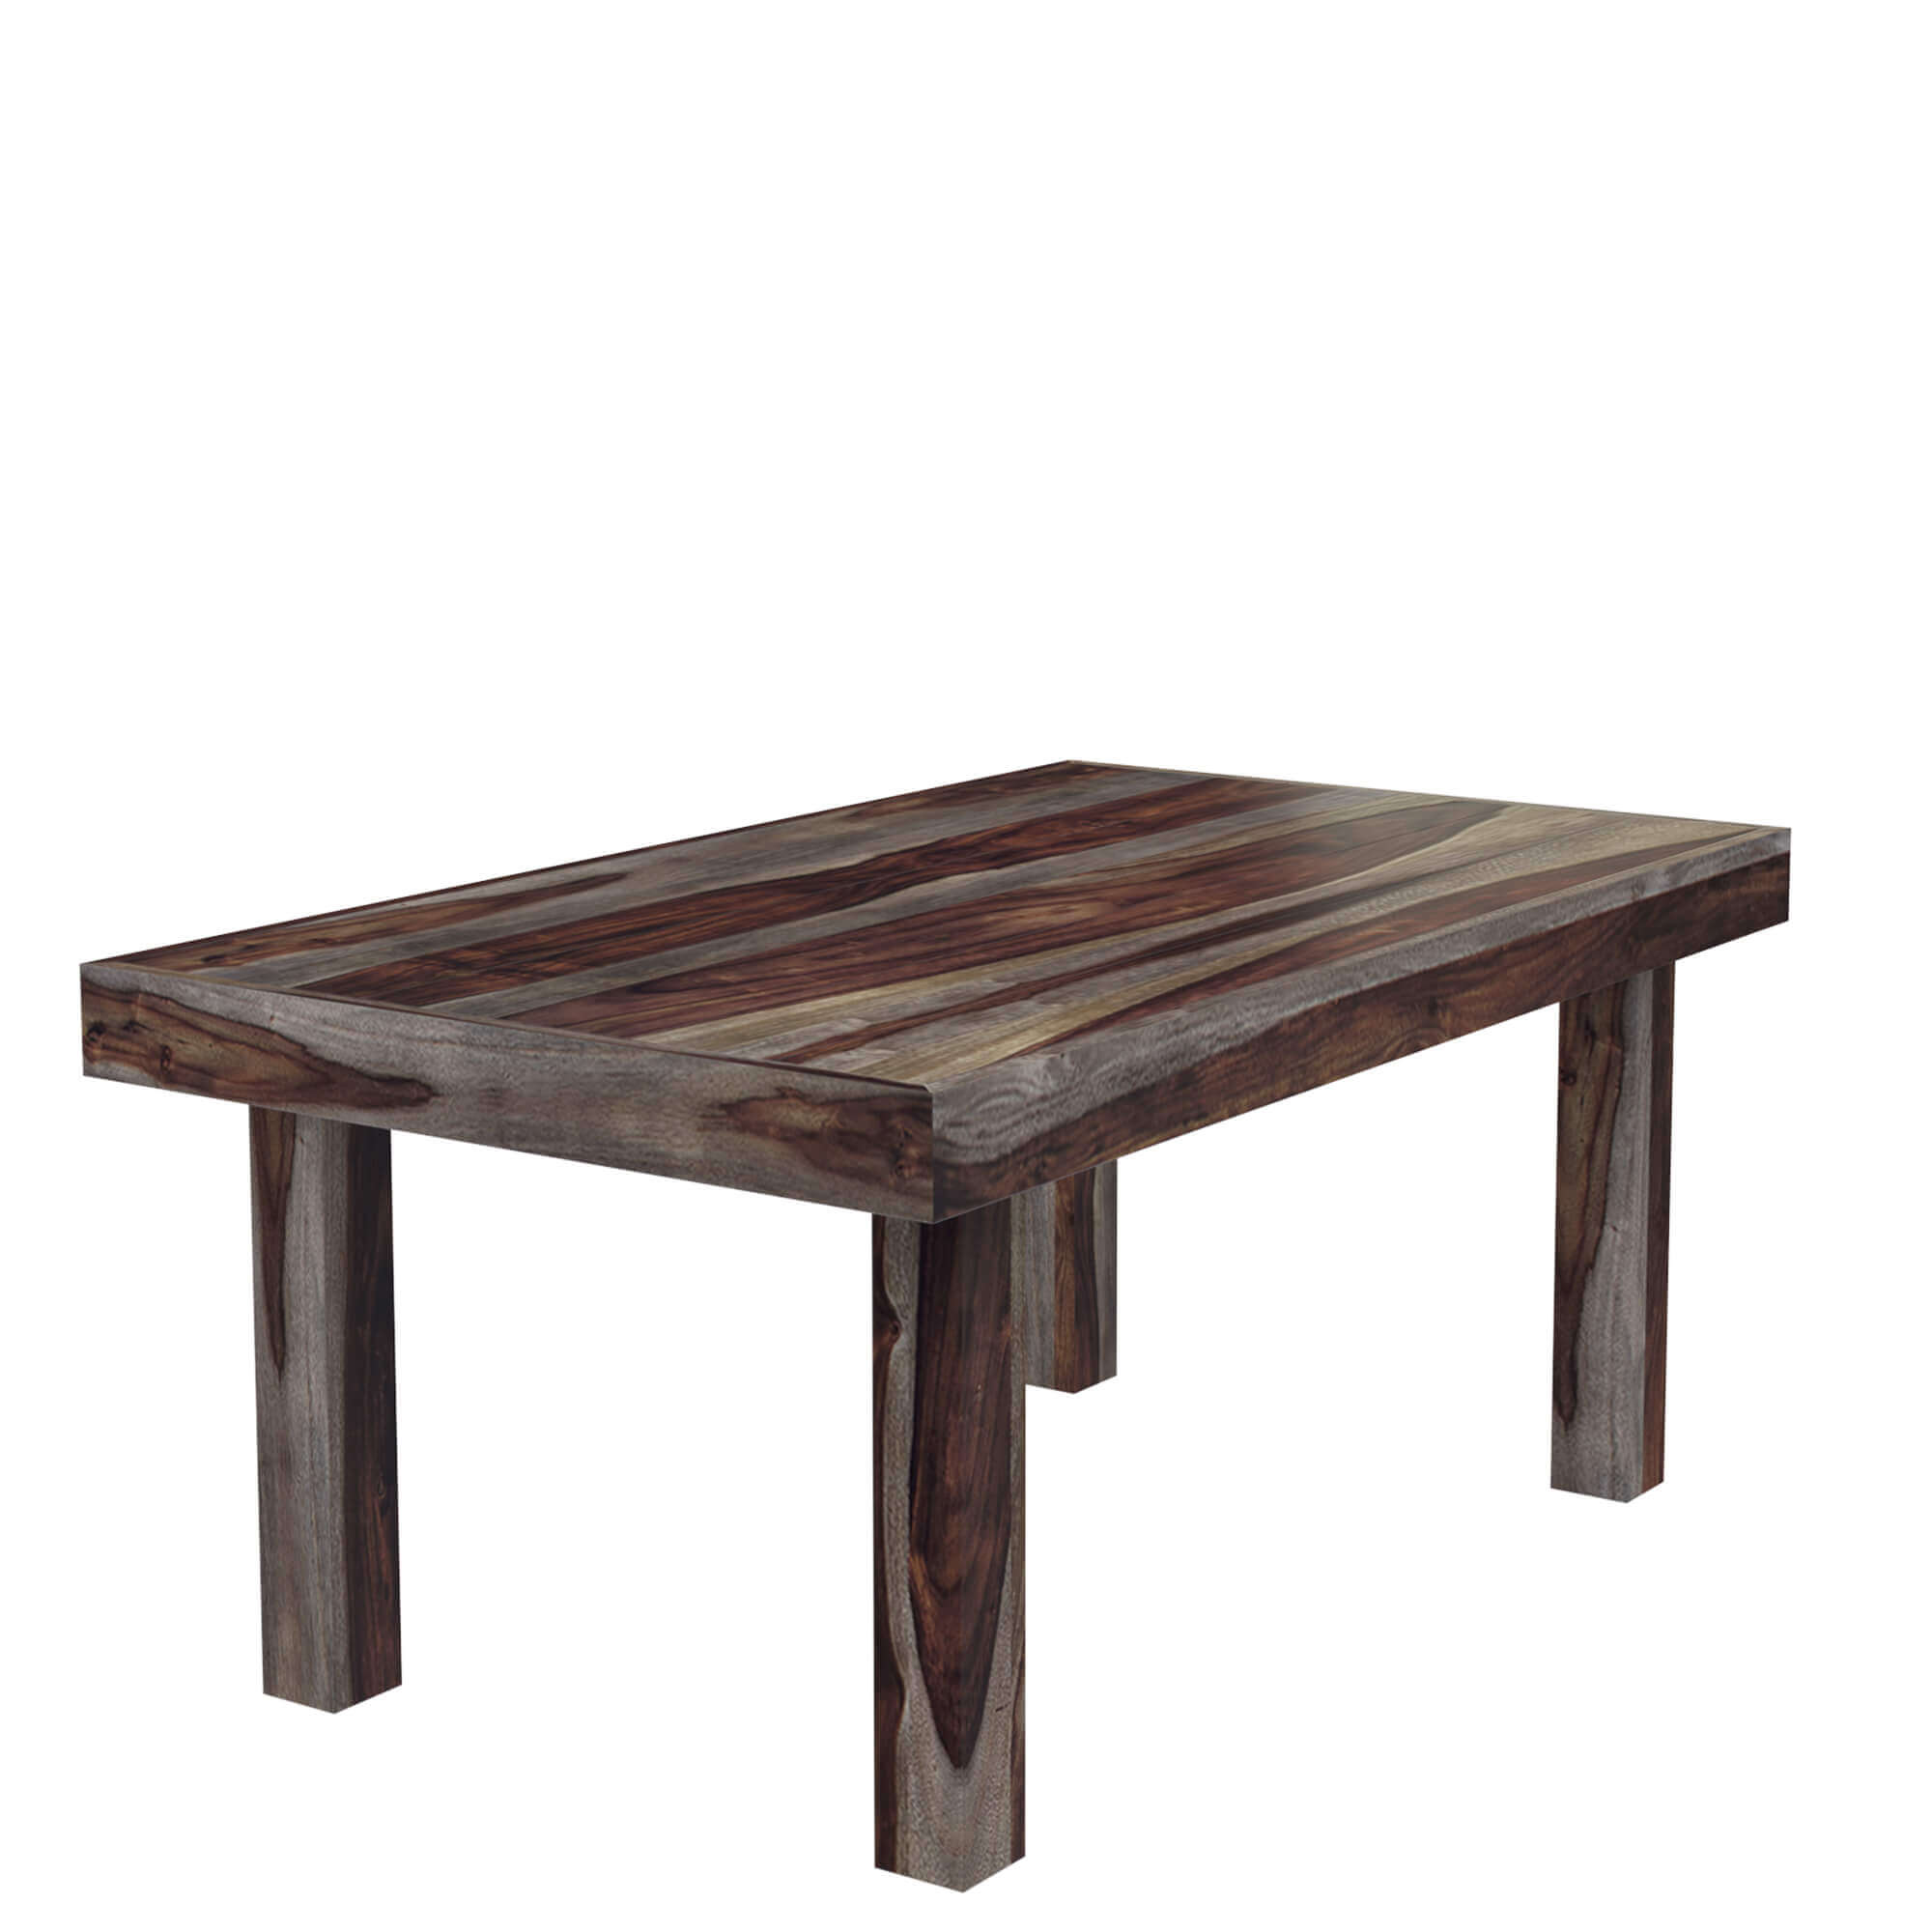 Frisco modern solid wood rectangular rustic dining room table for Different dining tables